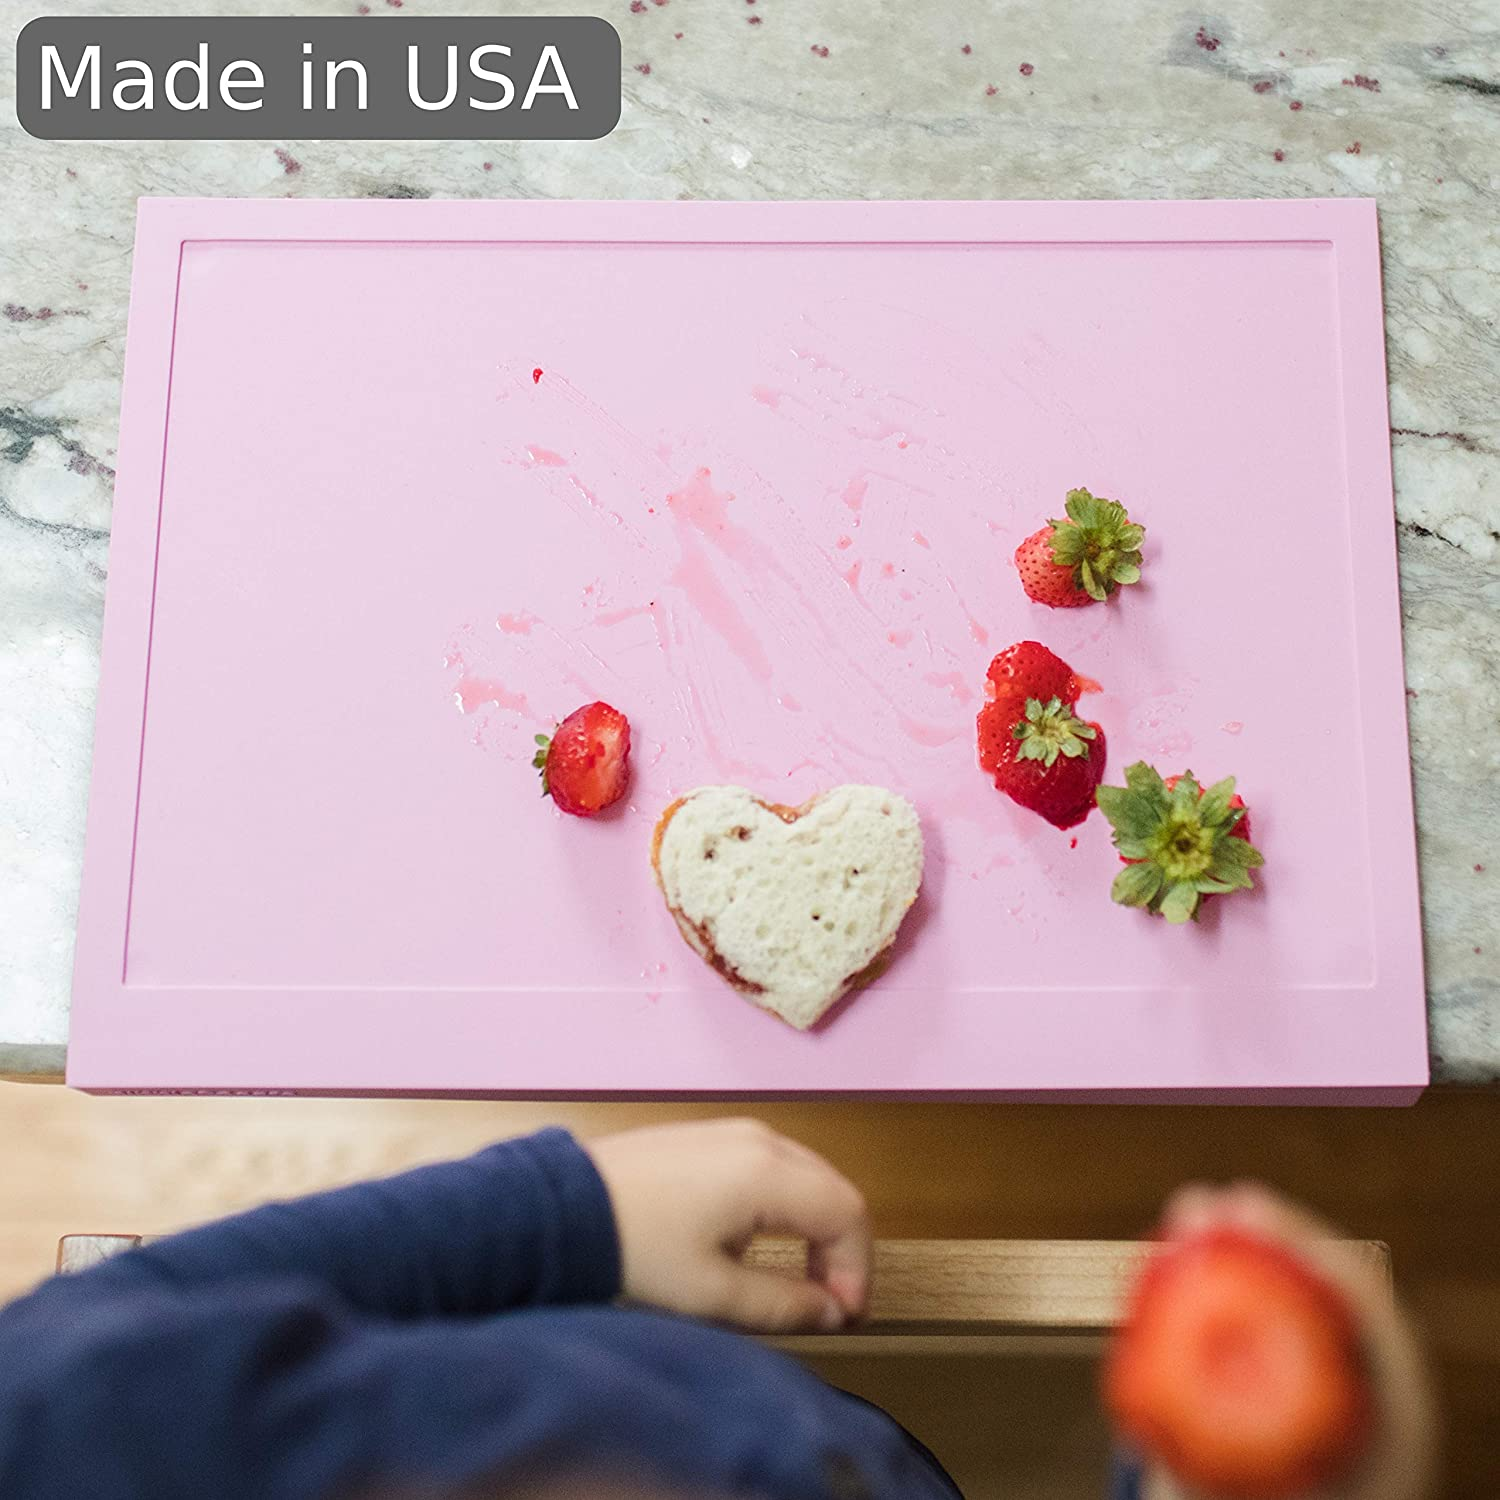 Perfect for Baby and Toddler at Restaurant and Home Nibble Safe Baby Silicone Placemat with Suction Cups and Table Edge Guard Gray Made in USA